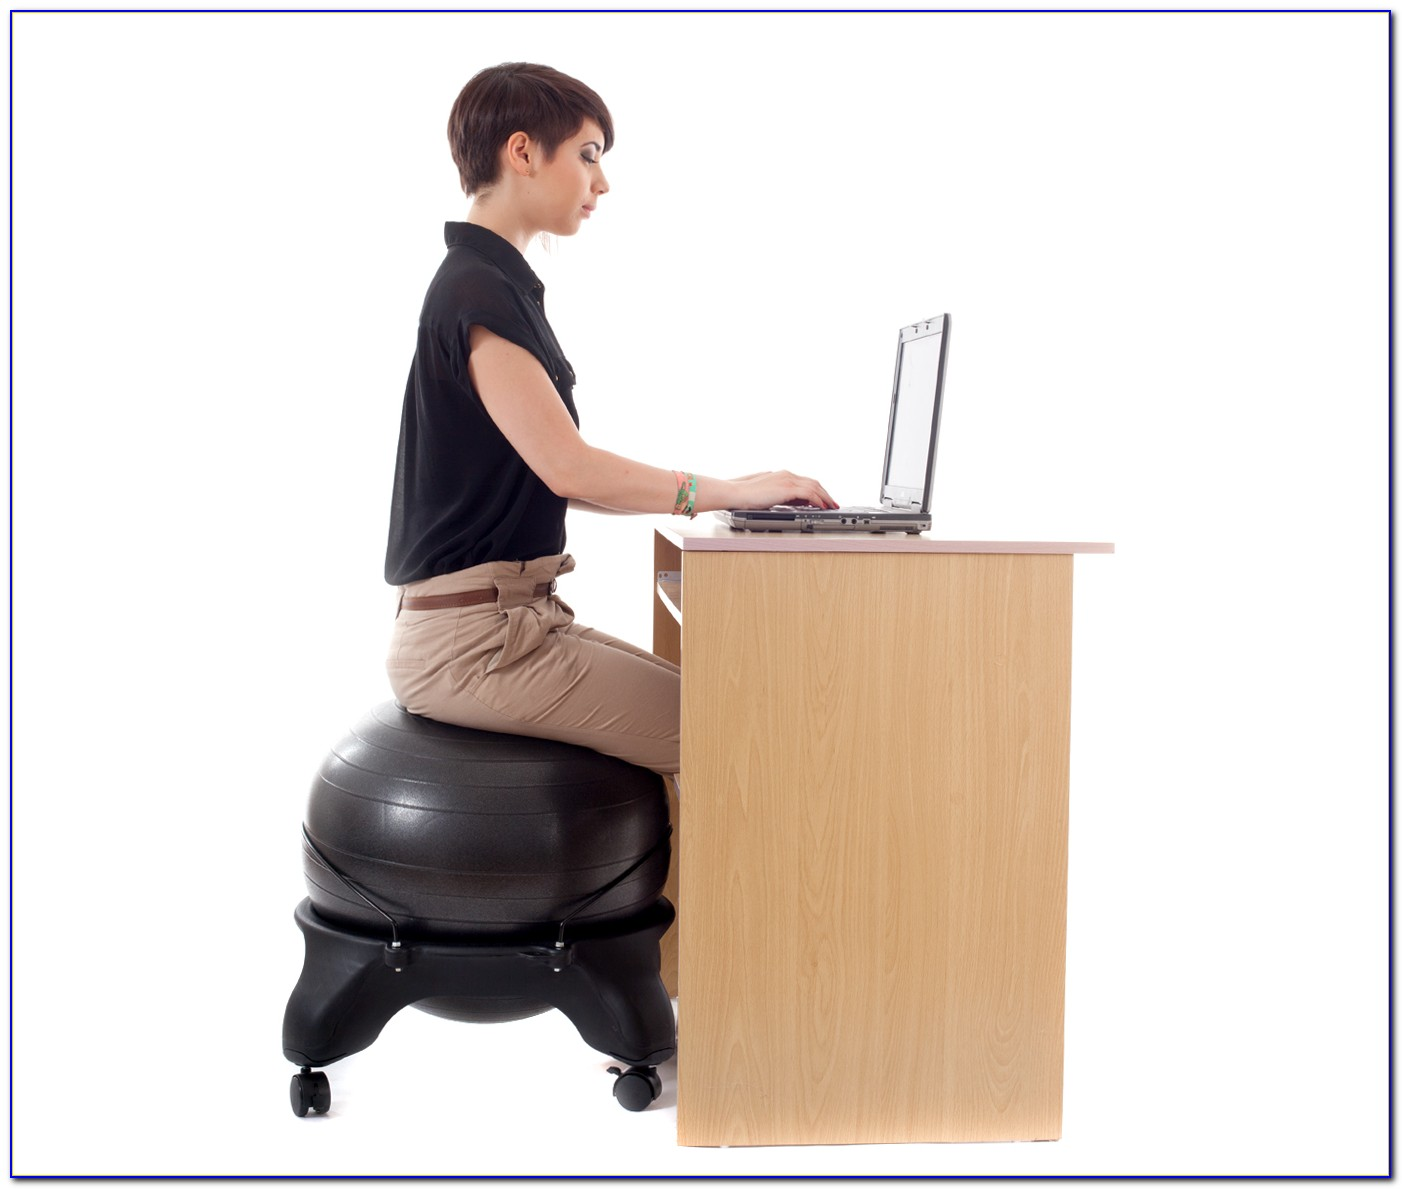 Sitting On Yoga Ball At Desk Calories